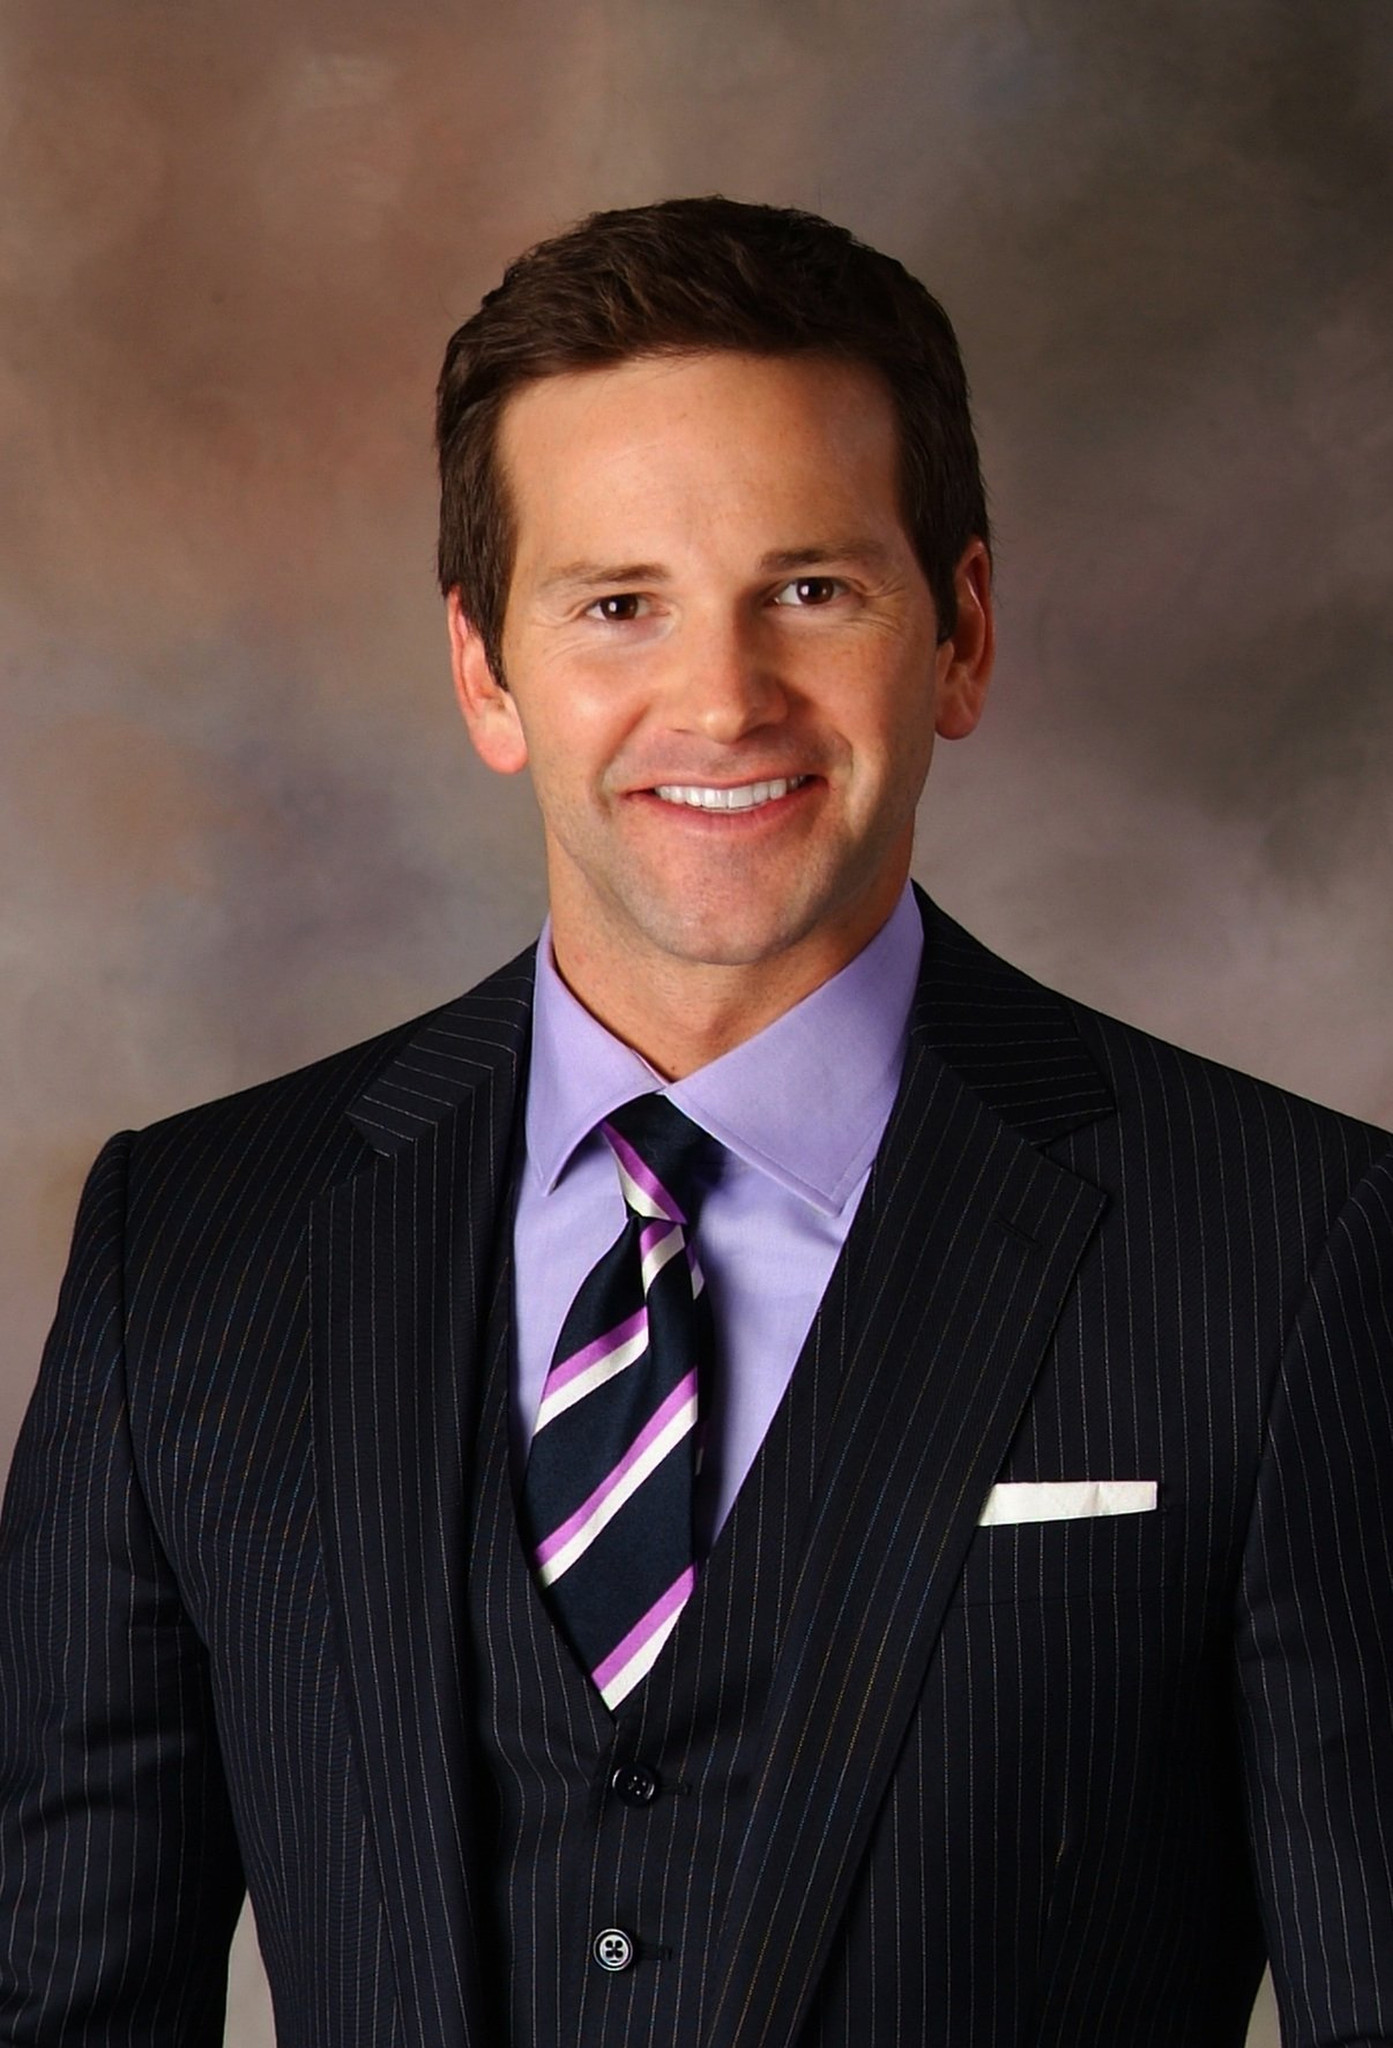 The Supreme Court is declining to get involved in the corruption case against former Illinois congressman Aaron Schock